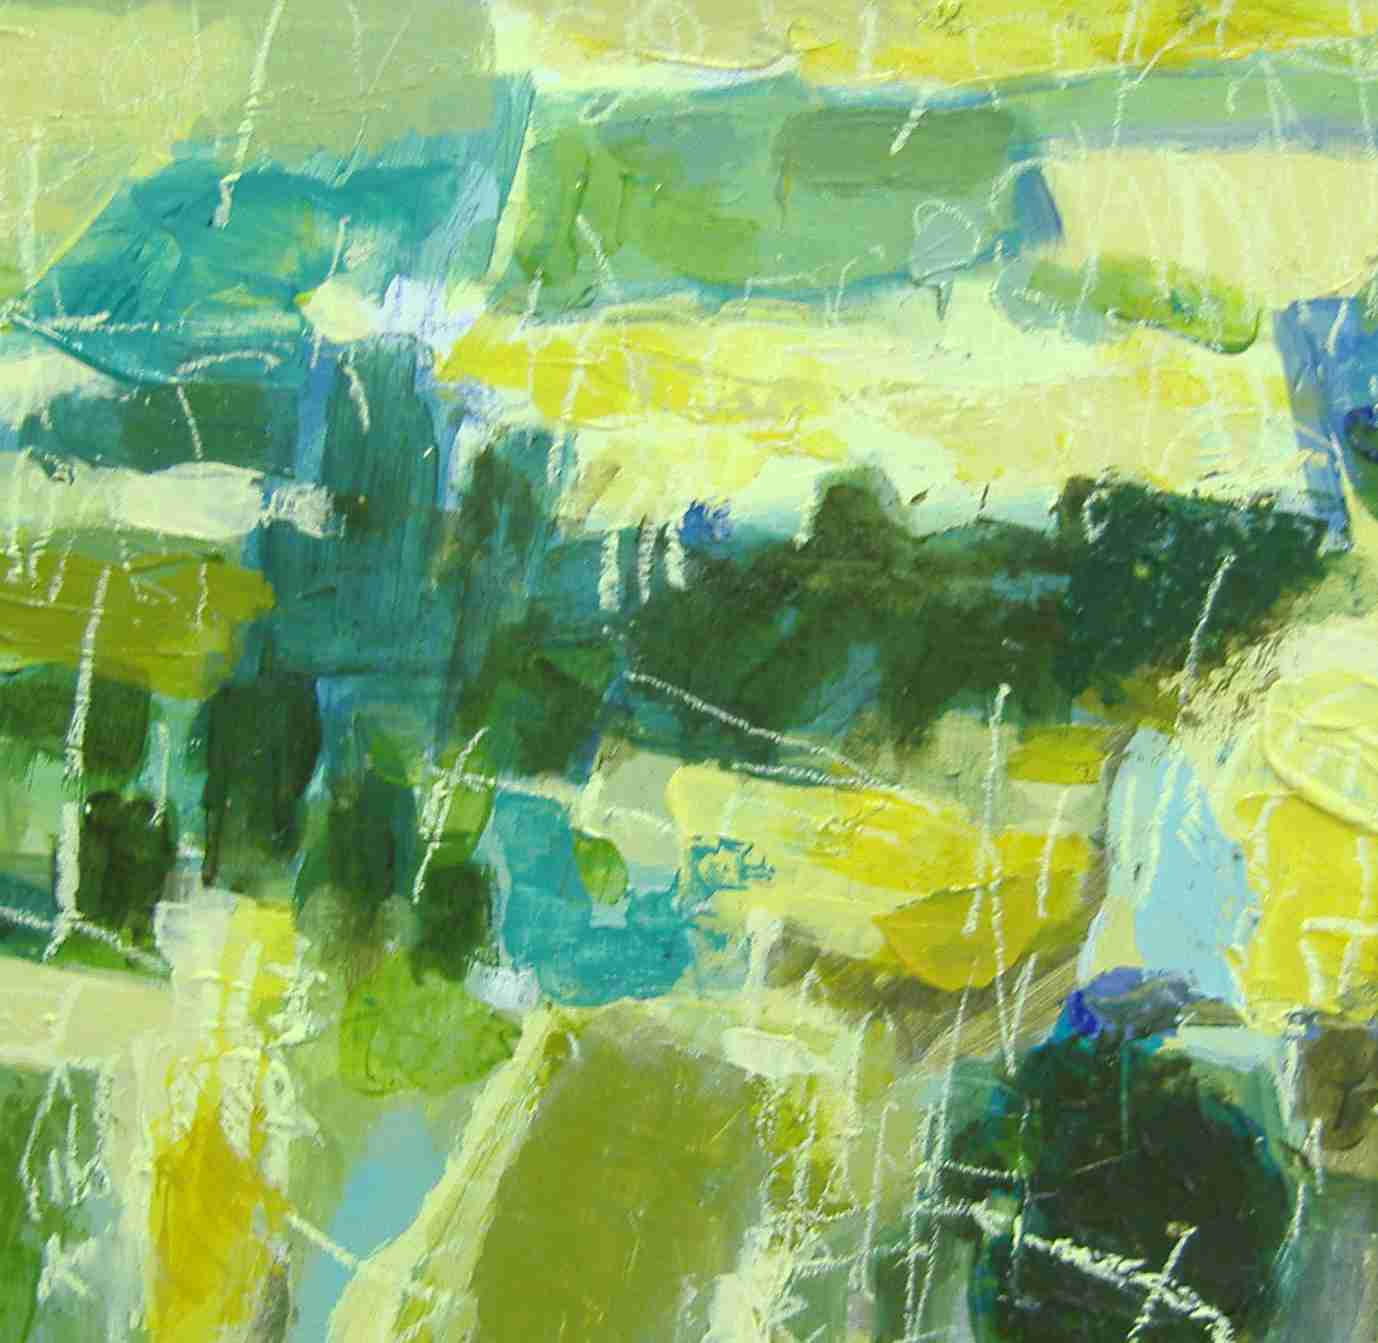 19-forth-fields-acrylic-pastel-2006-30-x-30cm